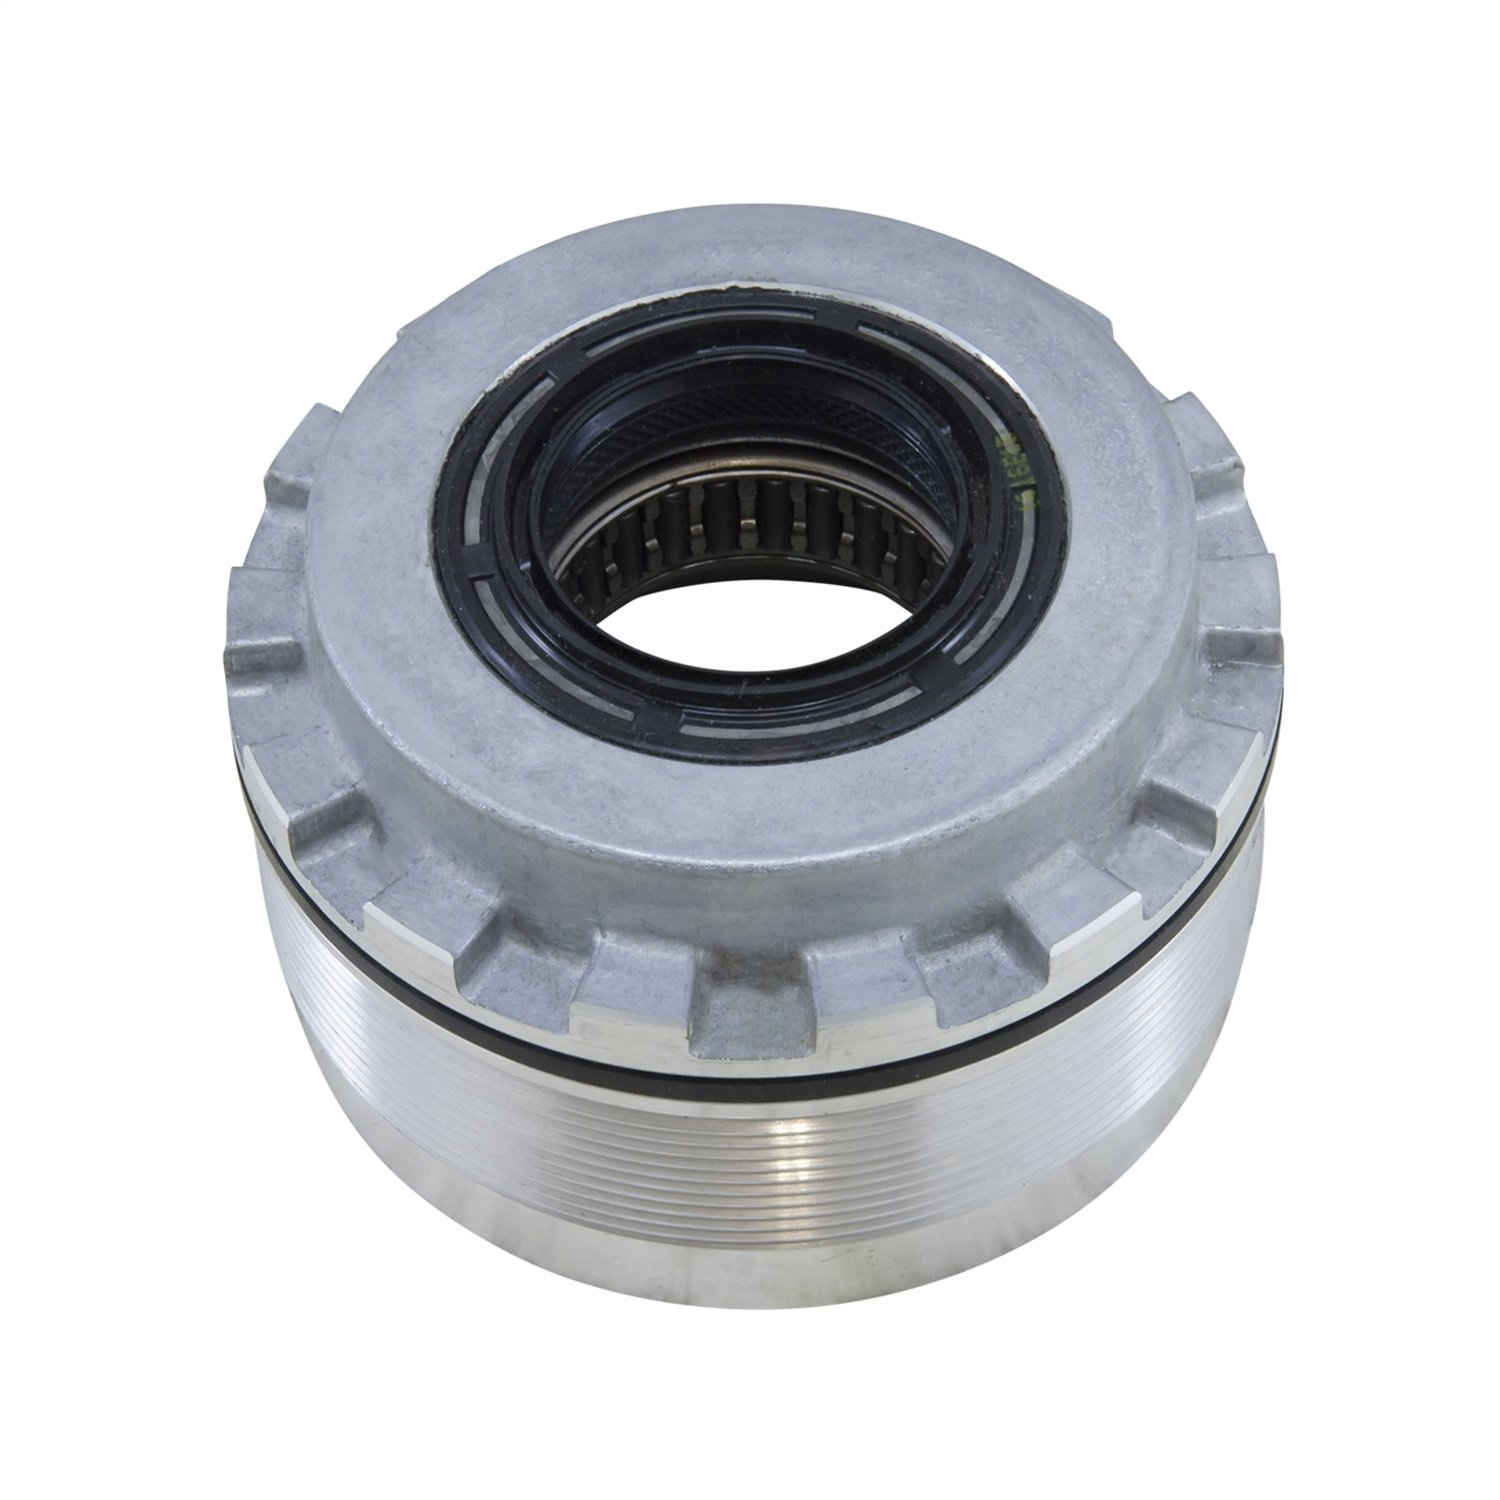 Yukon (YSPSA-016) Left Carrier Bearing Adjuster for GM 9.25'' IFS Differential